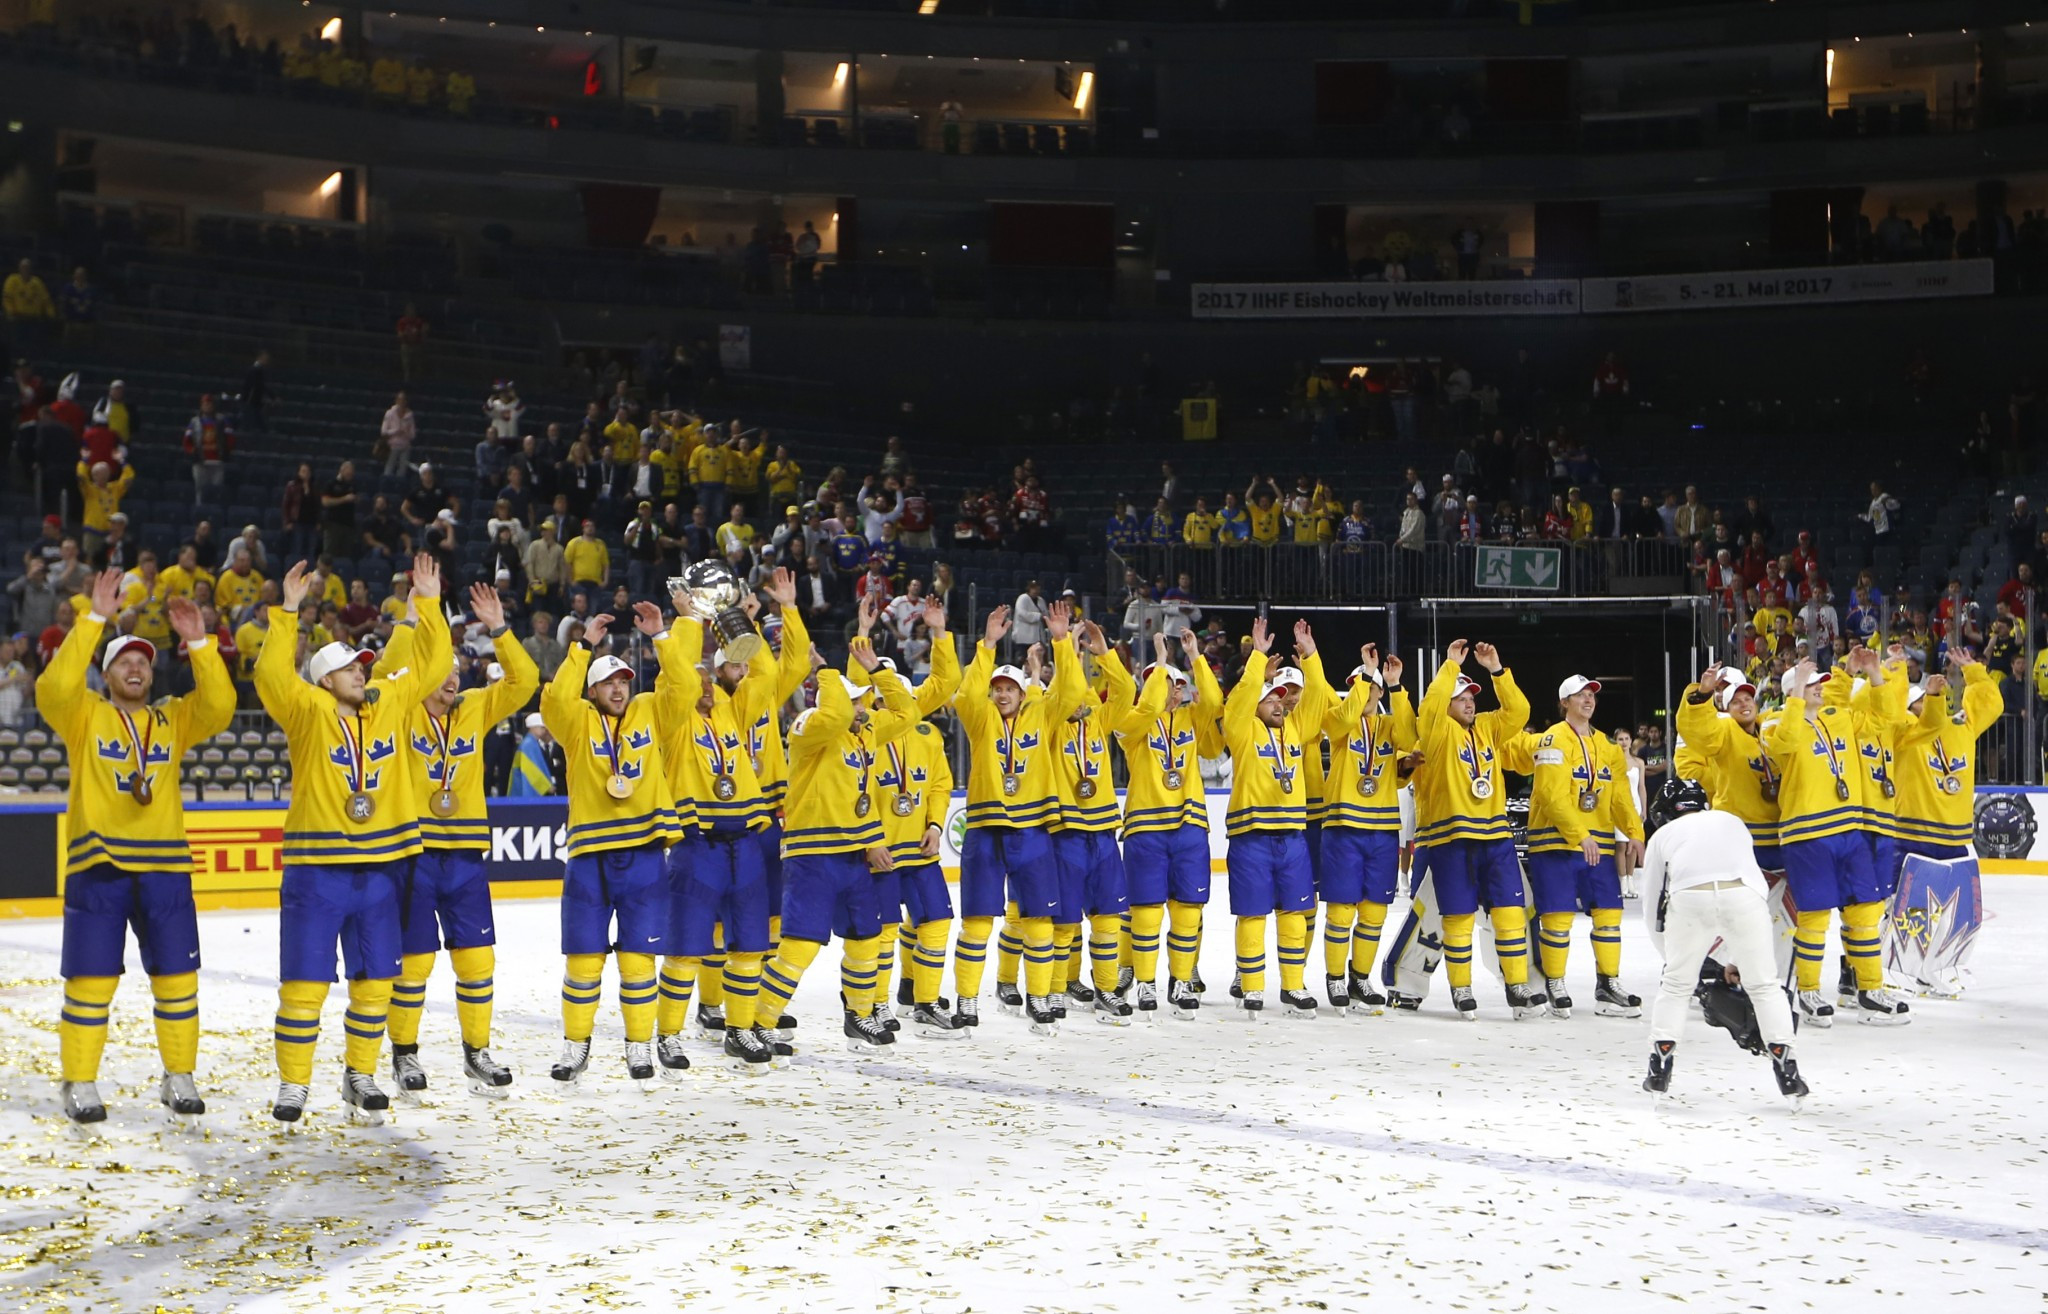 Holders Sweden will face Belarus in their opening match of the 2018 IIHF World Championships ©Getty Images